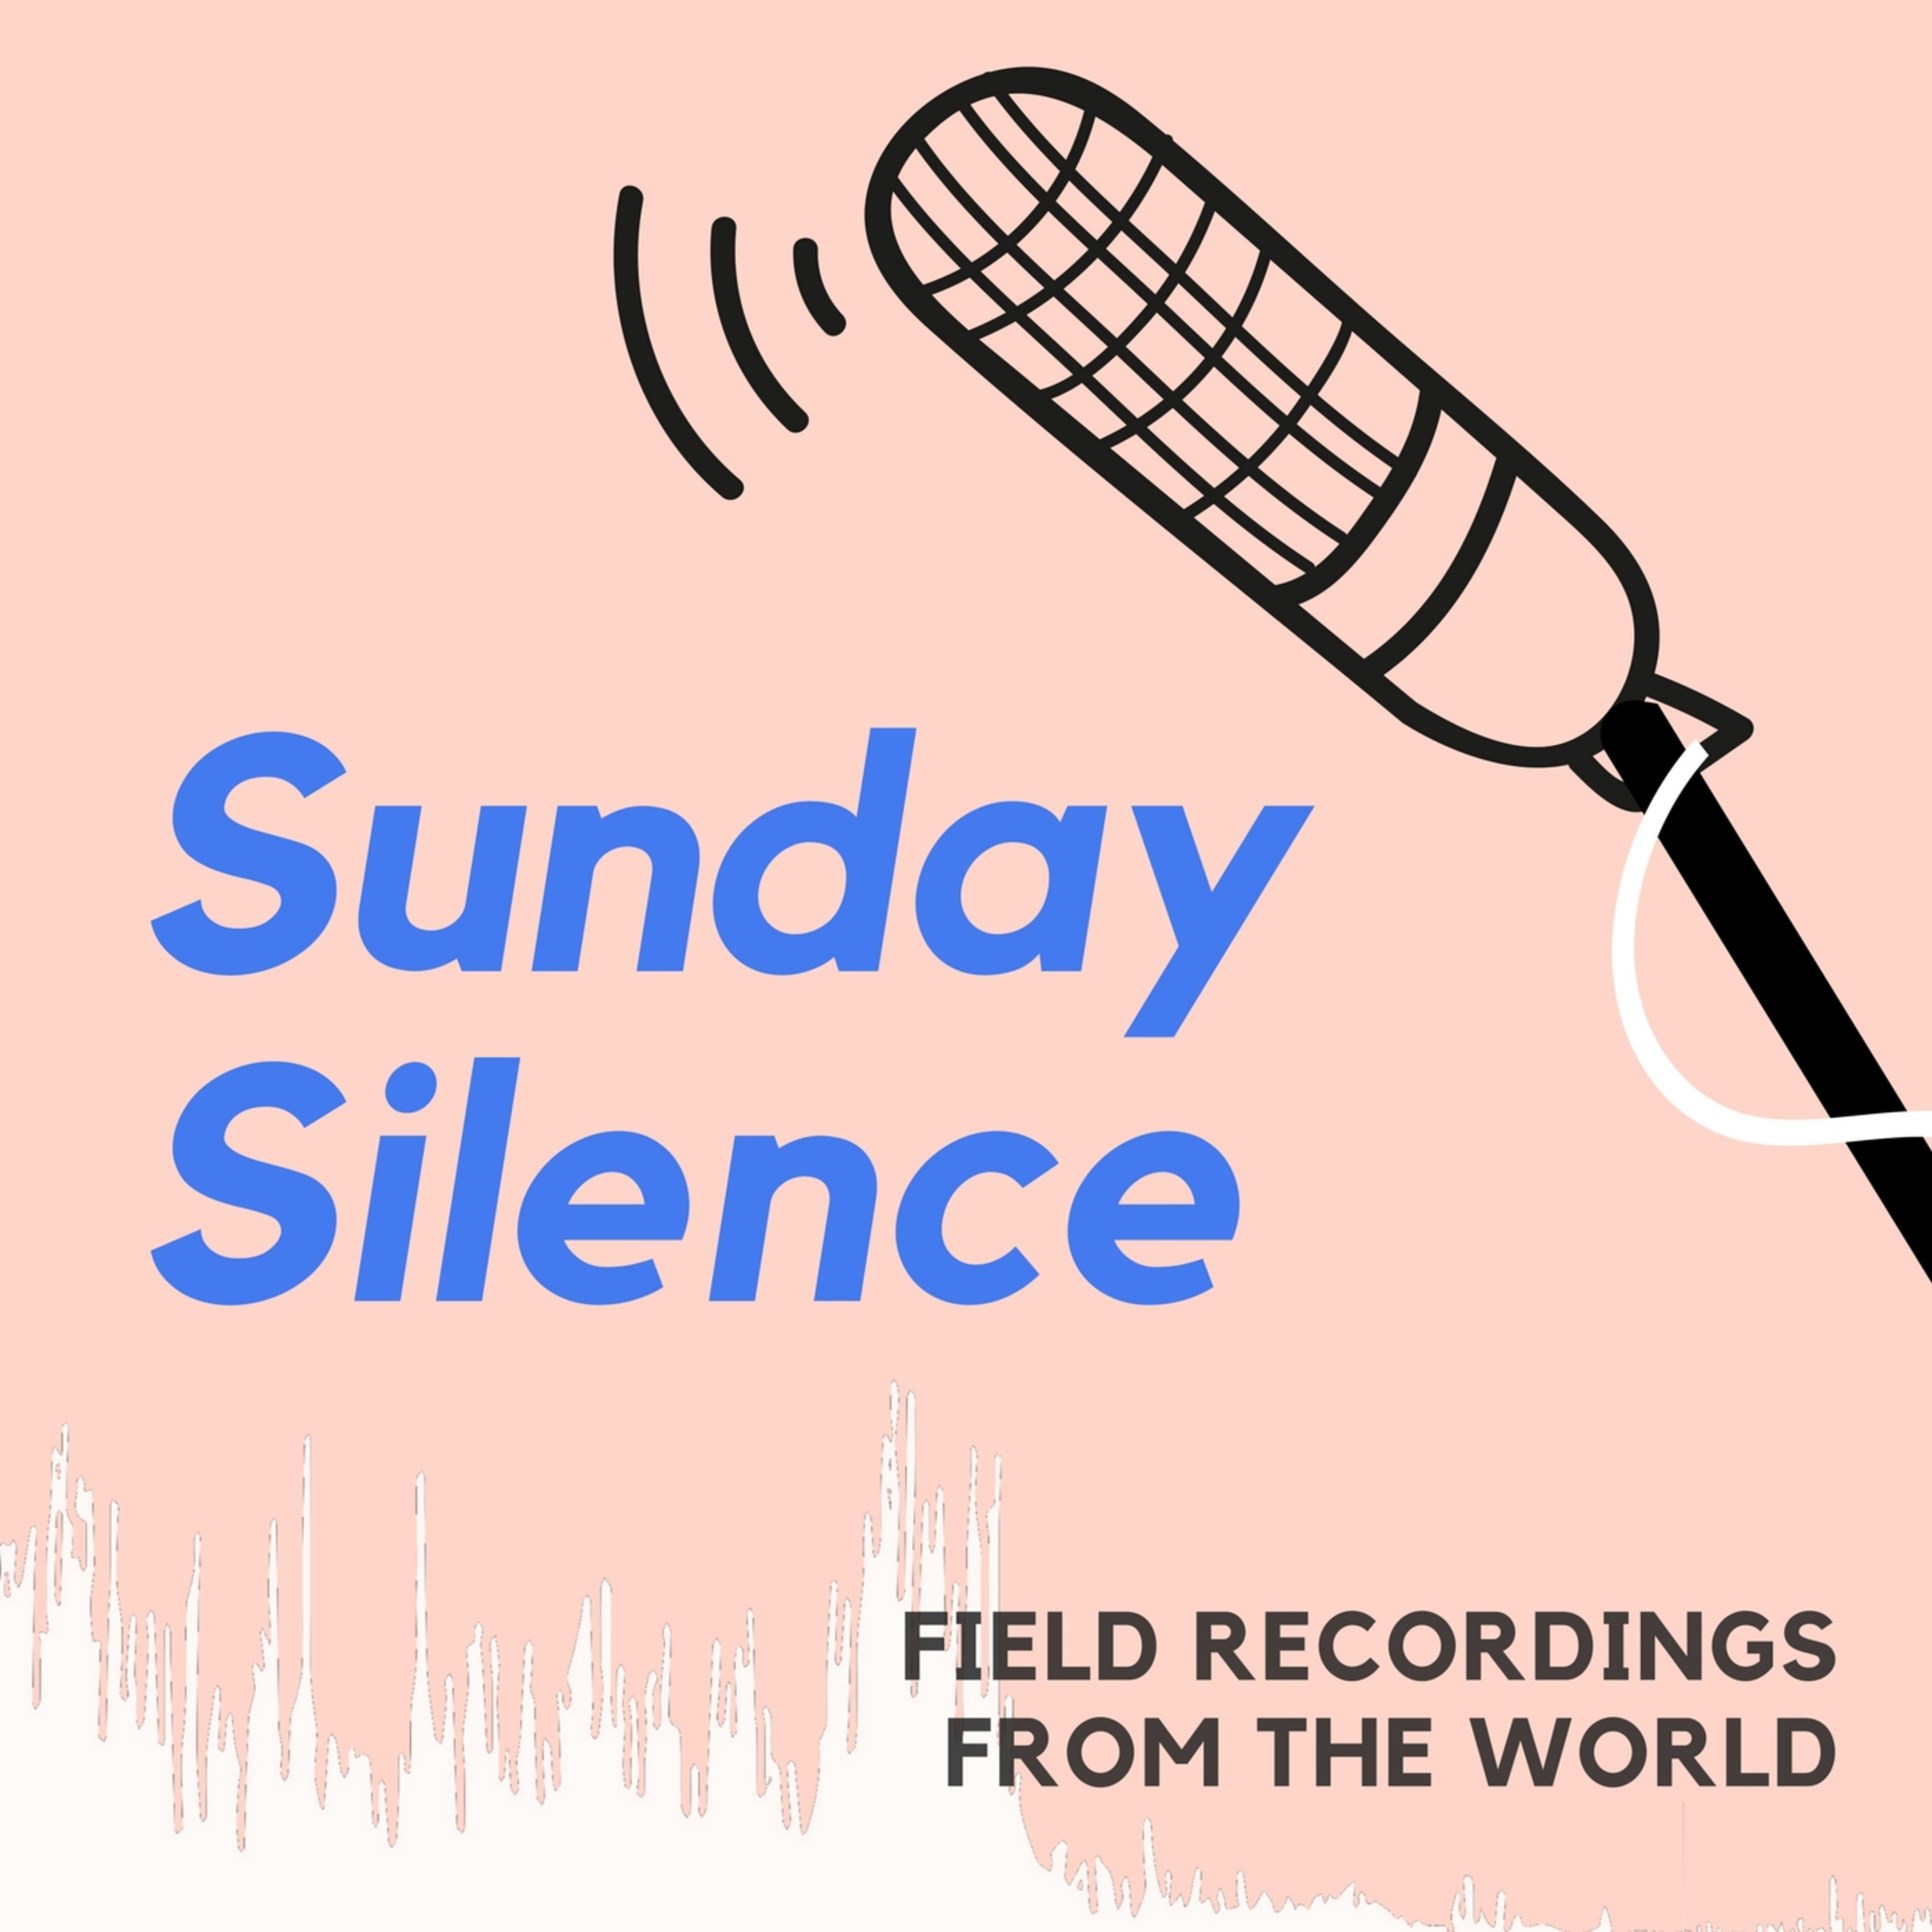 Sunday Silence - Field Recordings from the World